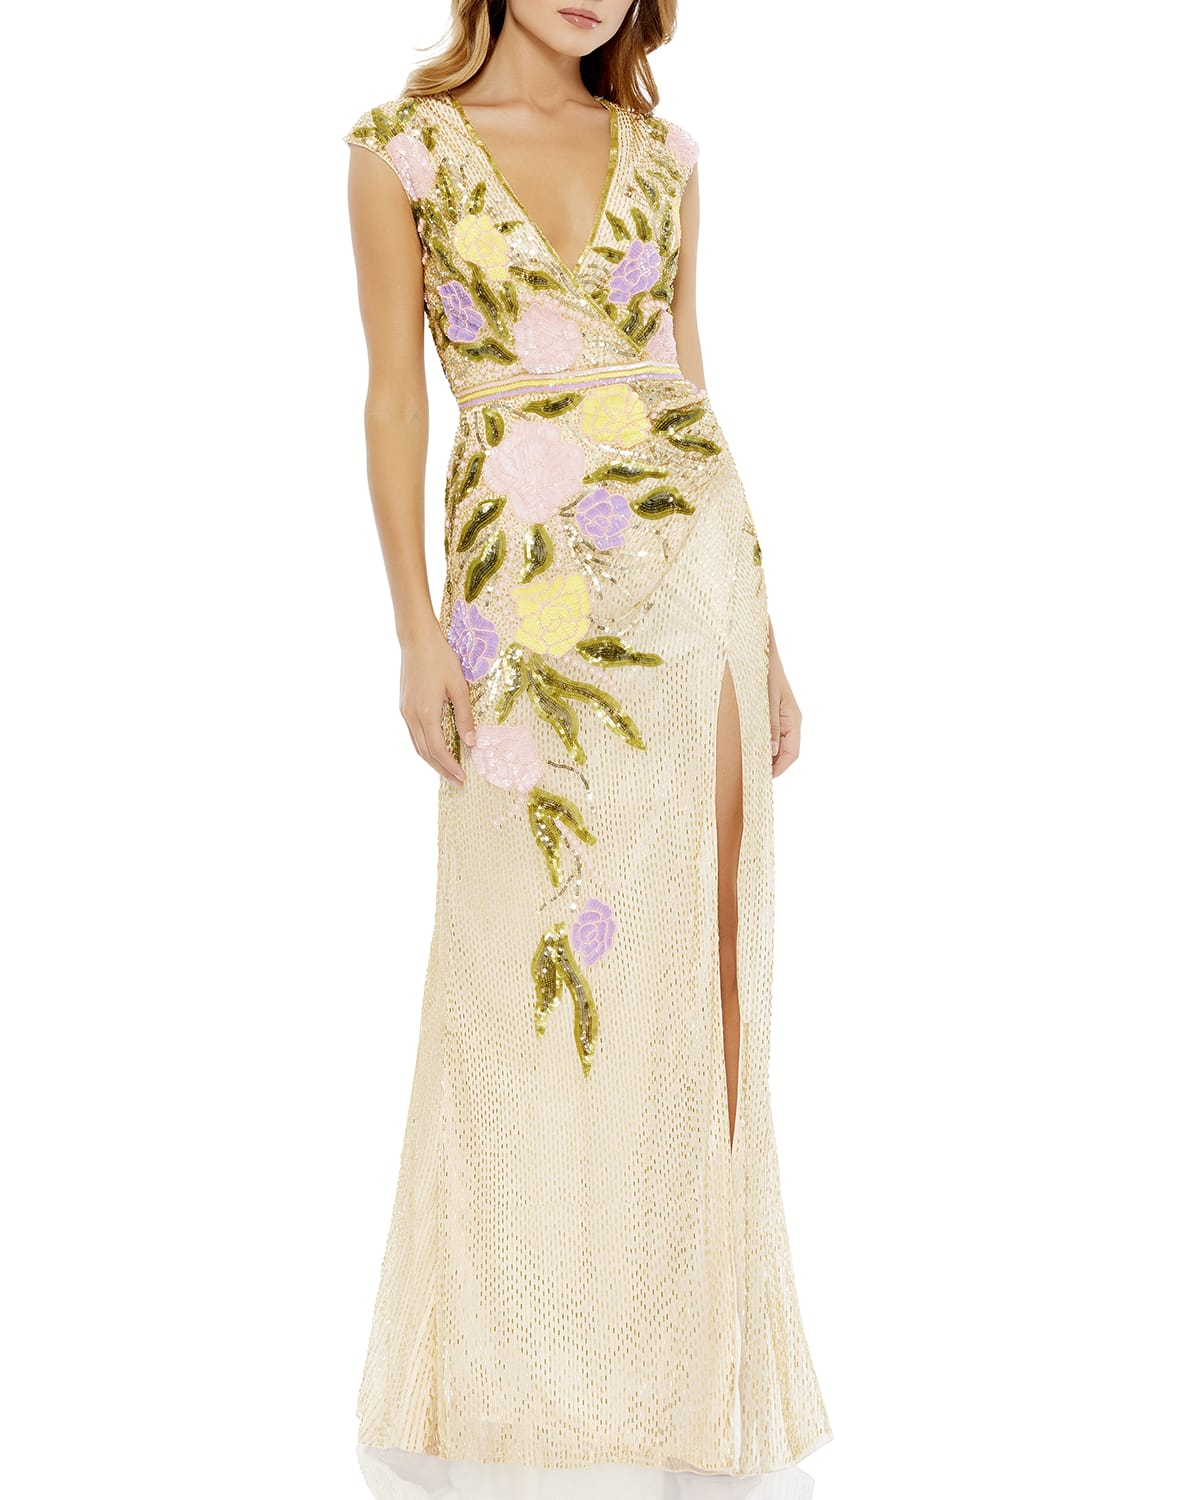 Cap-Sleeve Bugle Bead Sequin Floral Gown